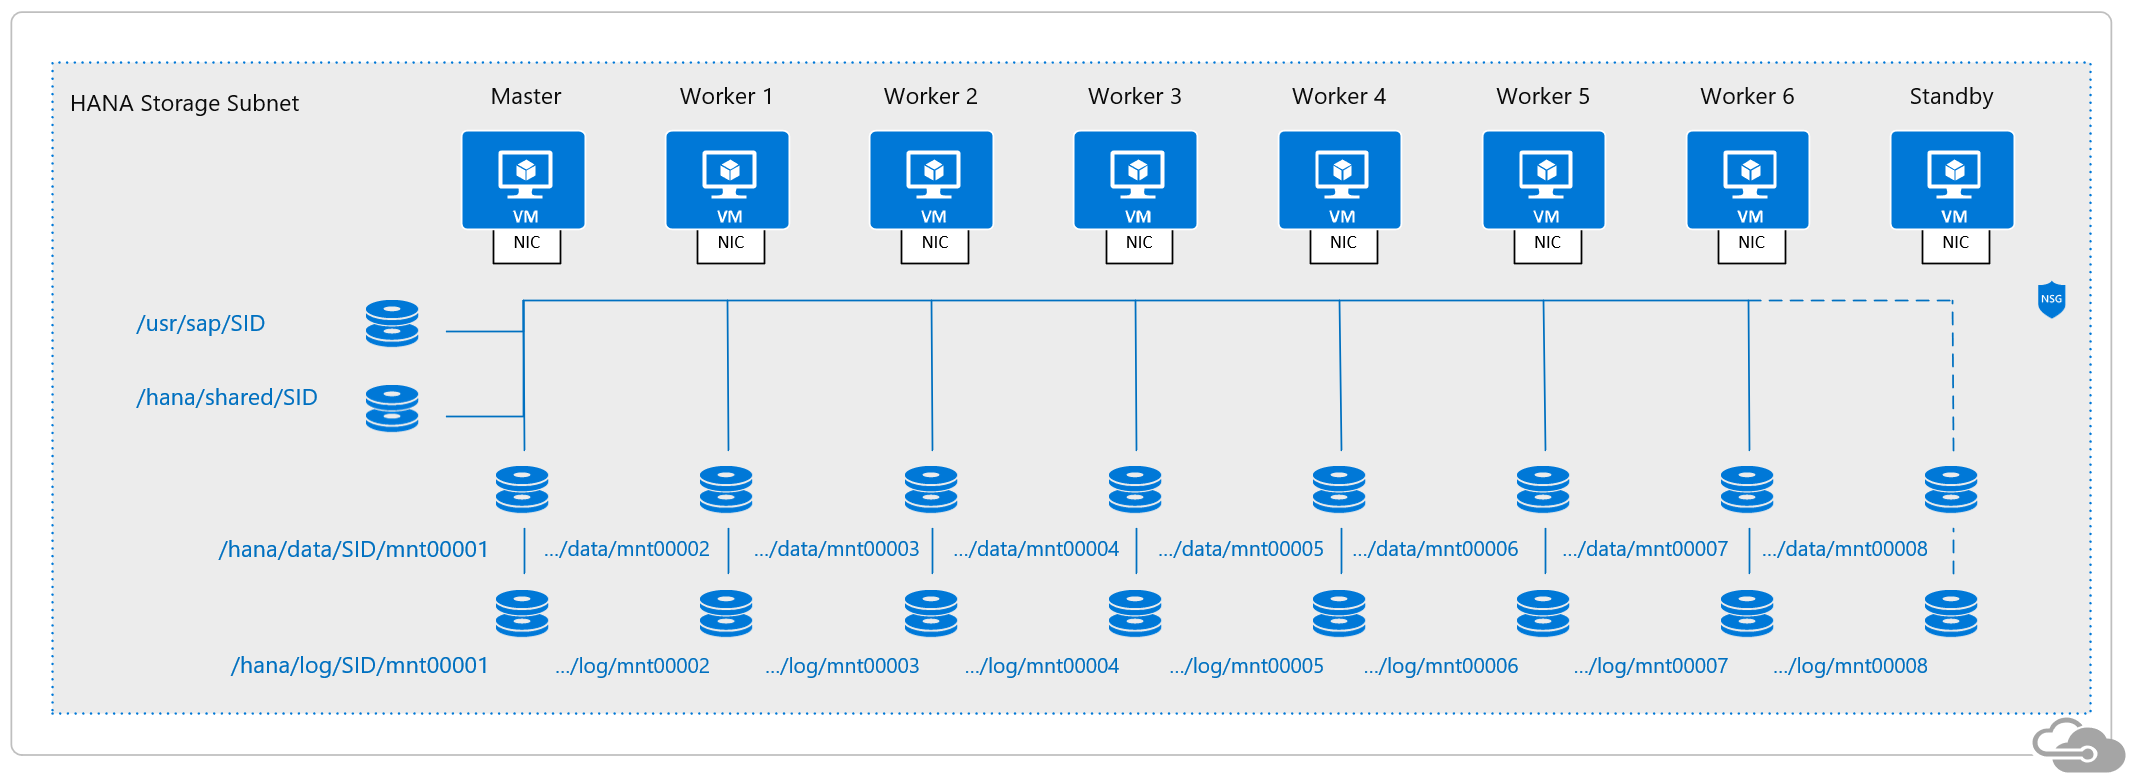 SAP HANA scale-out filesystem on Microsoft Azure HANA Large Instances